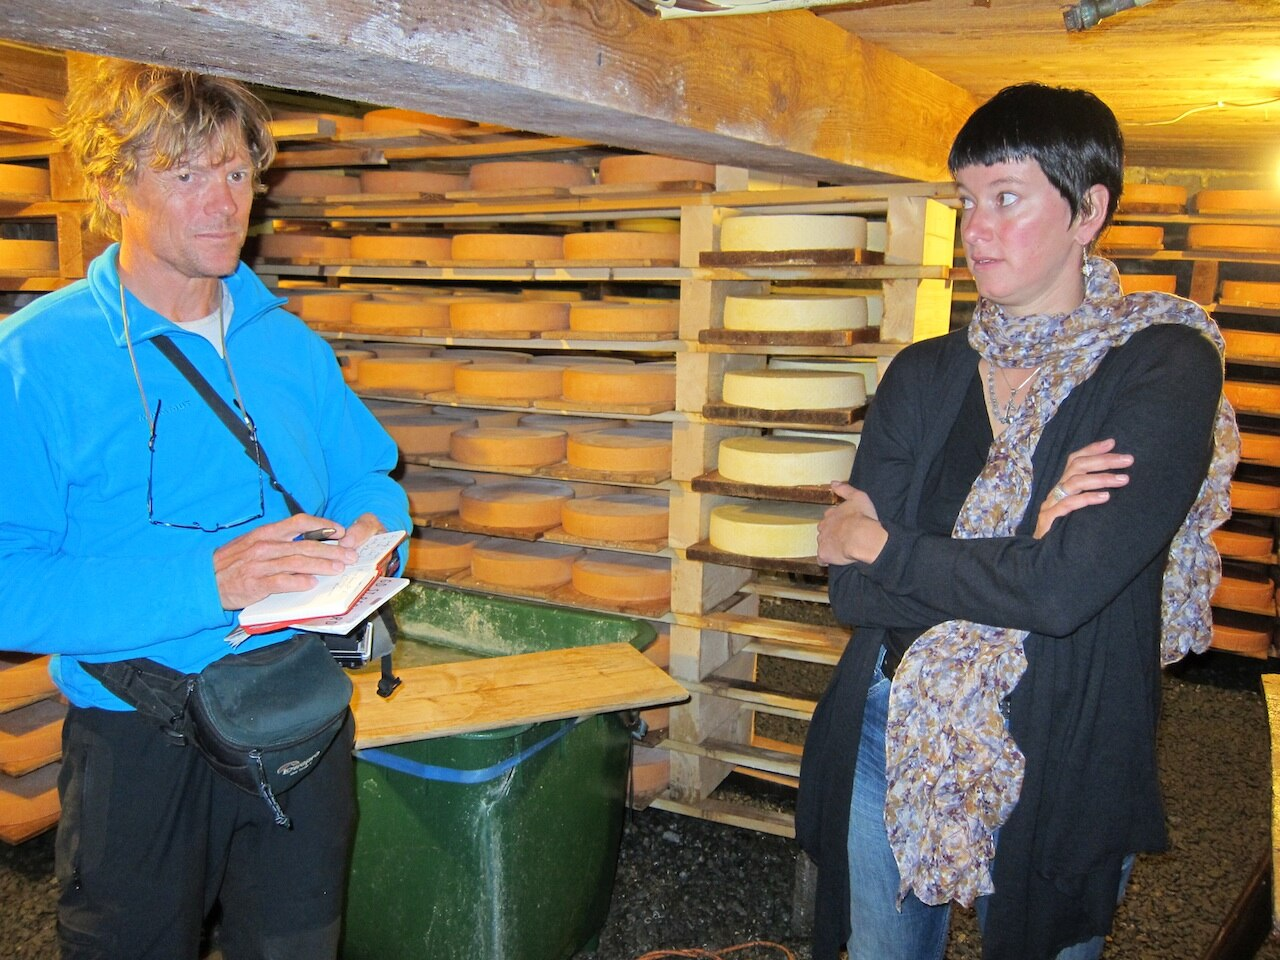 Sabine Coppey showing me the raclette cheese cave